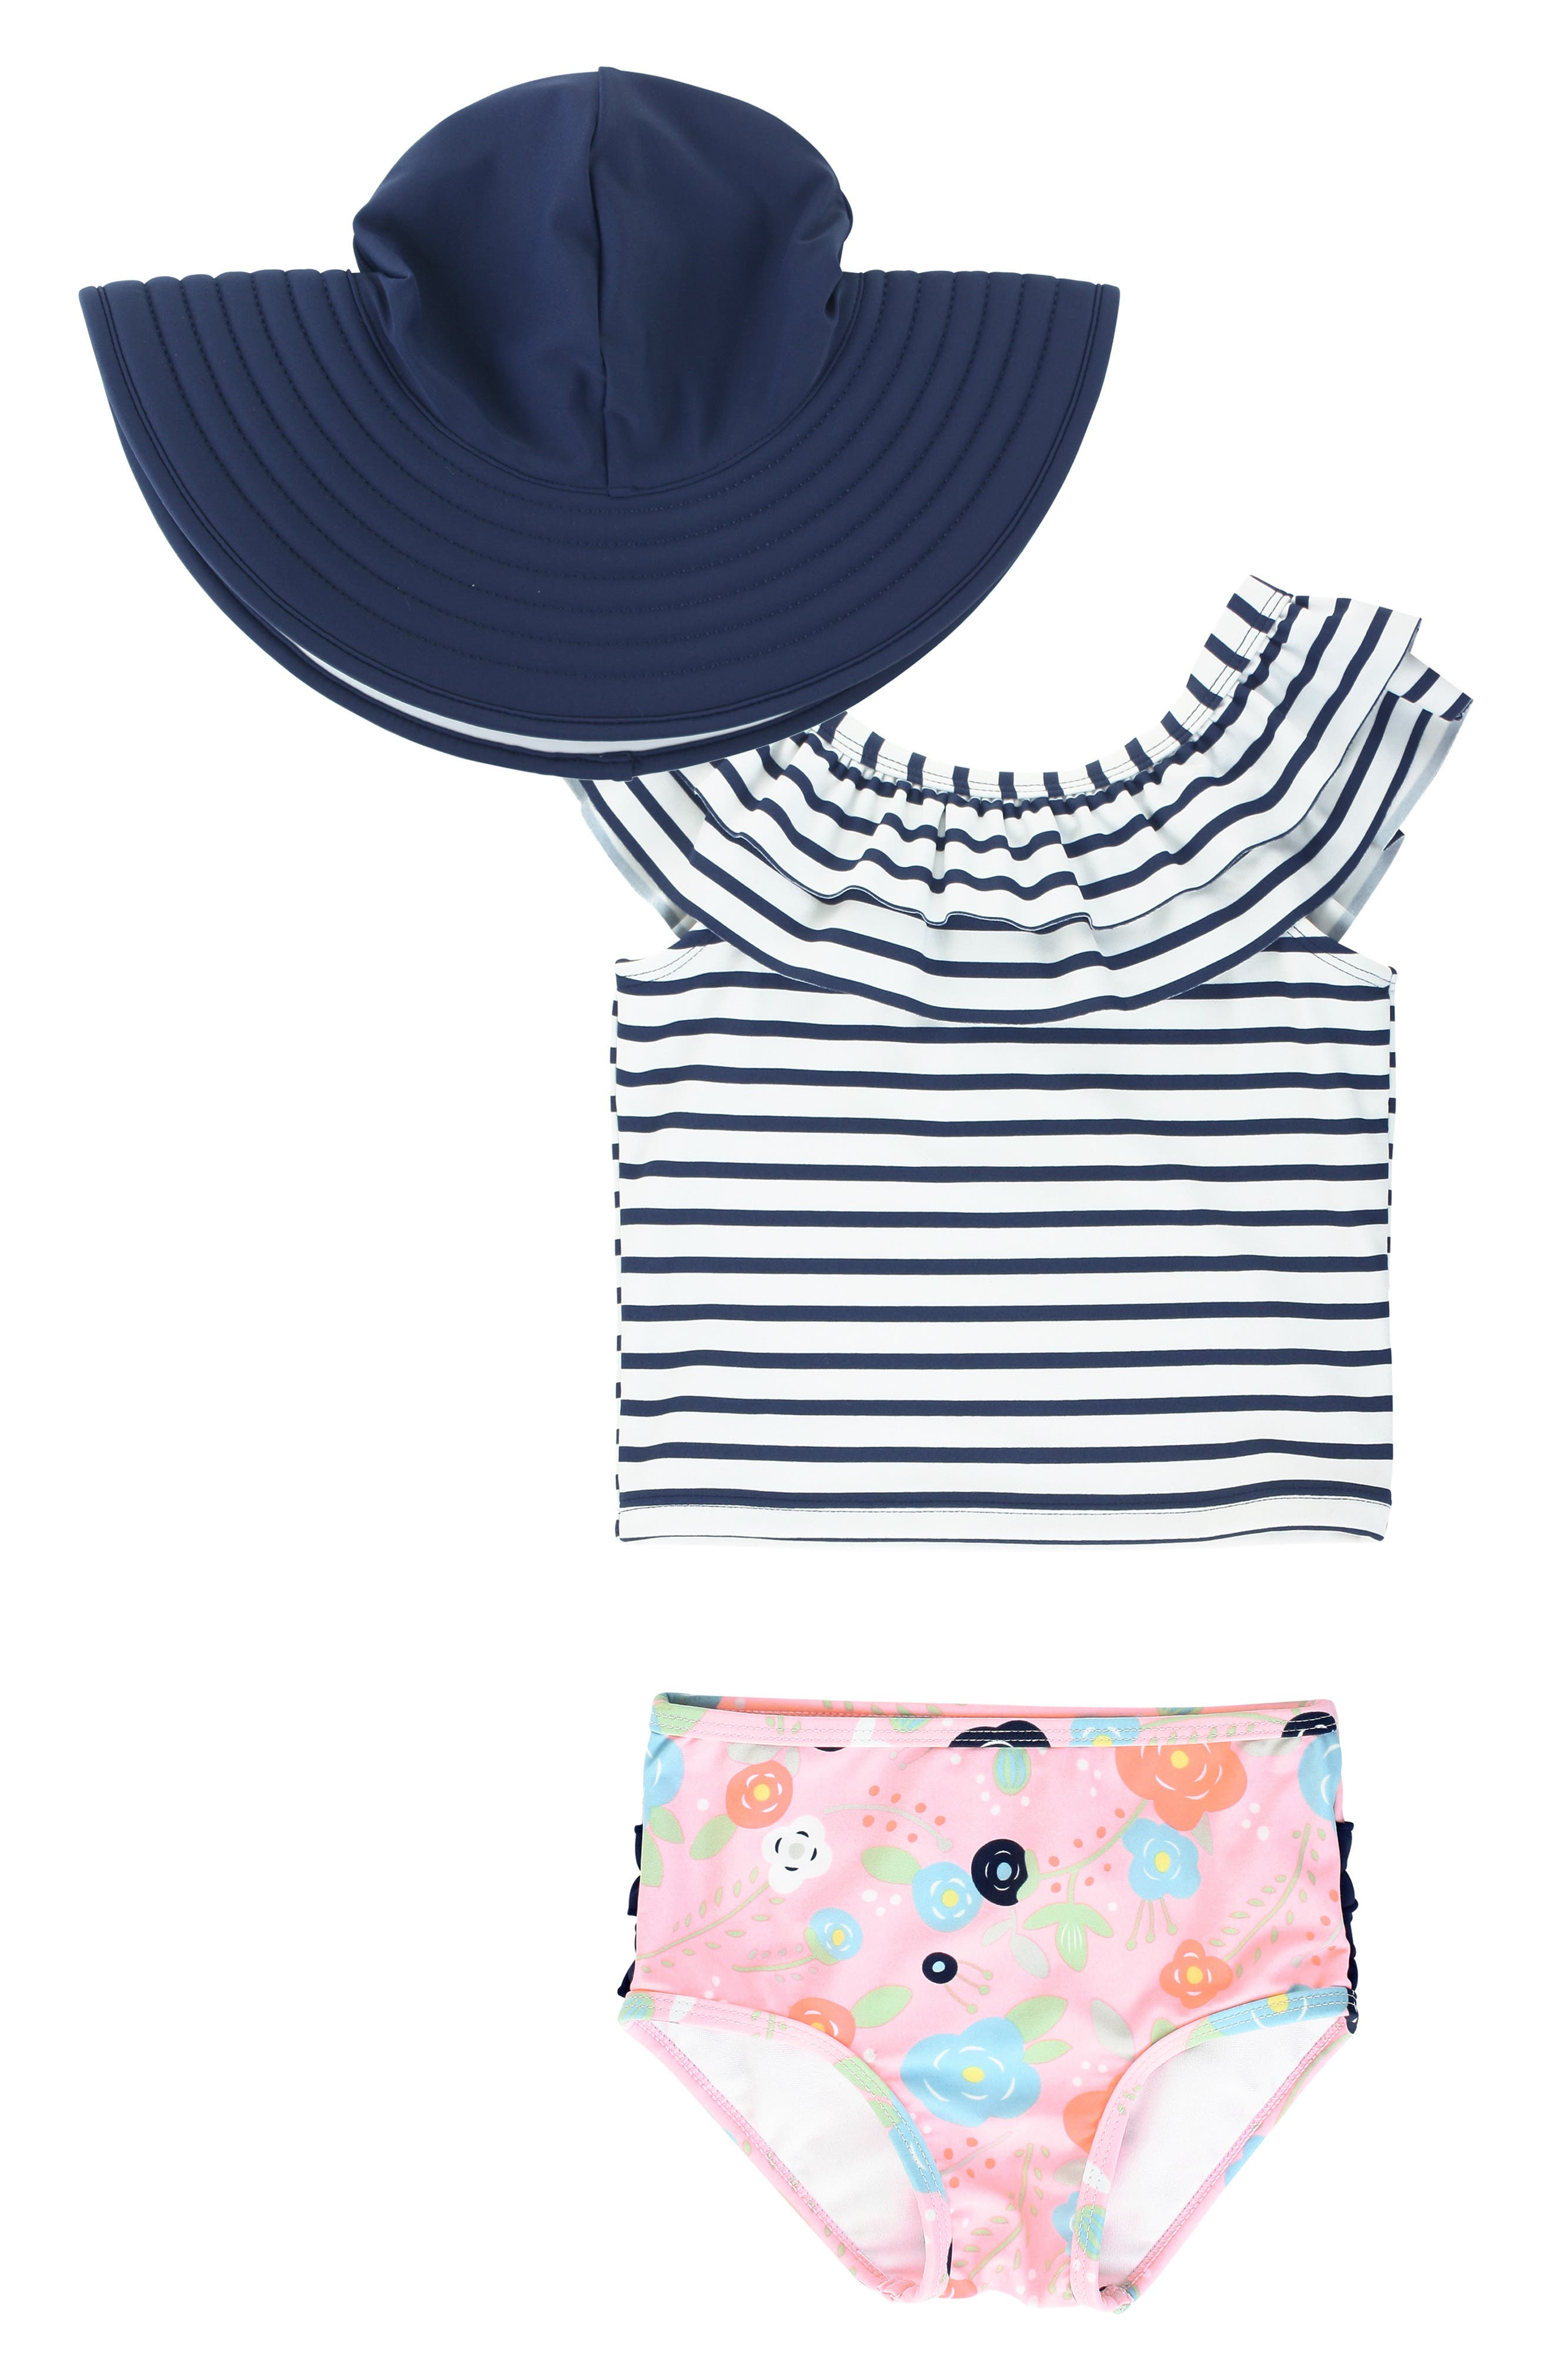 Breton stripes, bright blossoms and ruffled trim add ample charm to a beach-ready tankini swimsuit with built-in UPF 50+ for extra sun protection. Style Name: Rufflebutts Stripe Two-Piece Swimsuit & Reversible Hat Set (Baby). Style Number: 5915553. Available in stores.